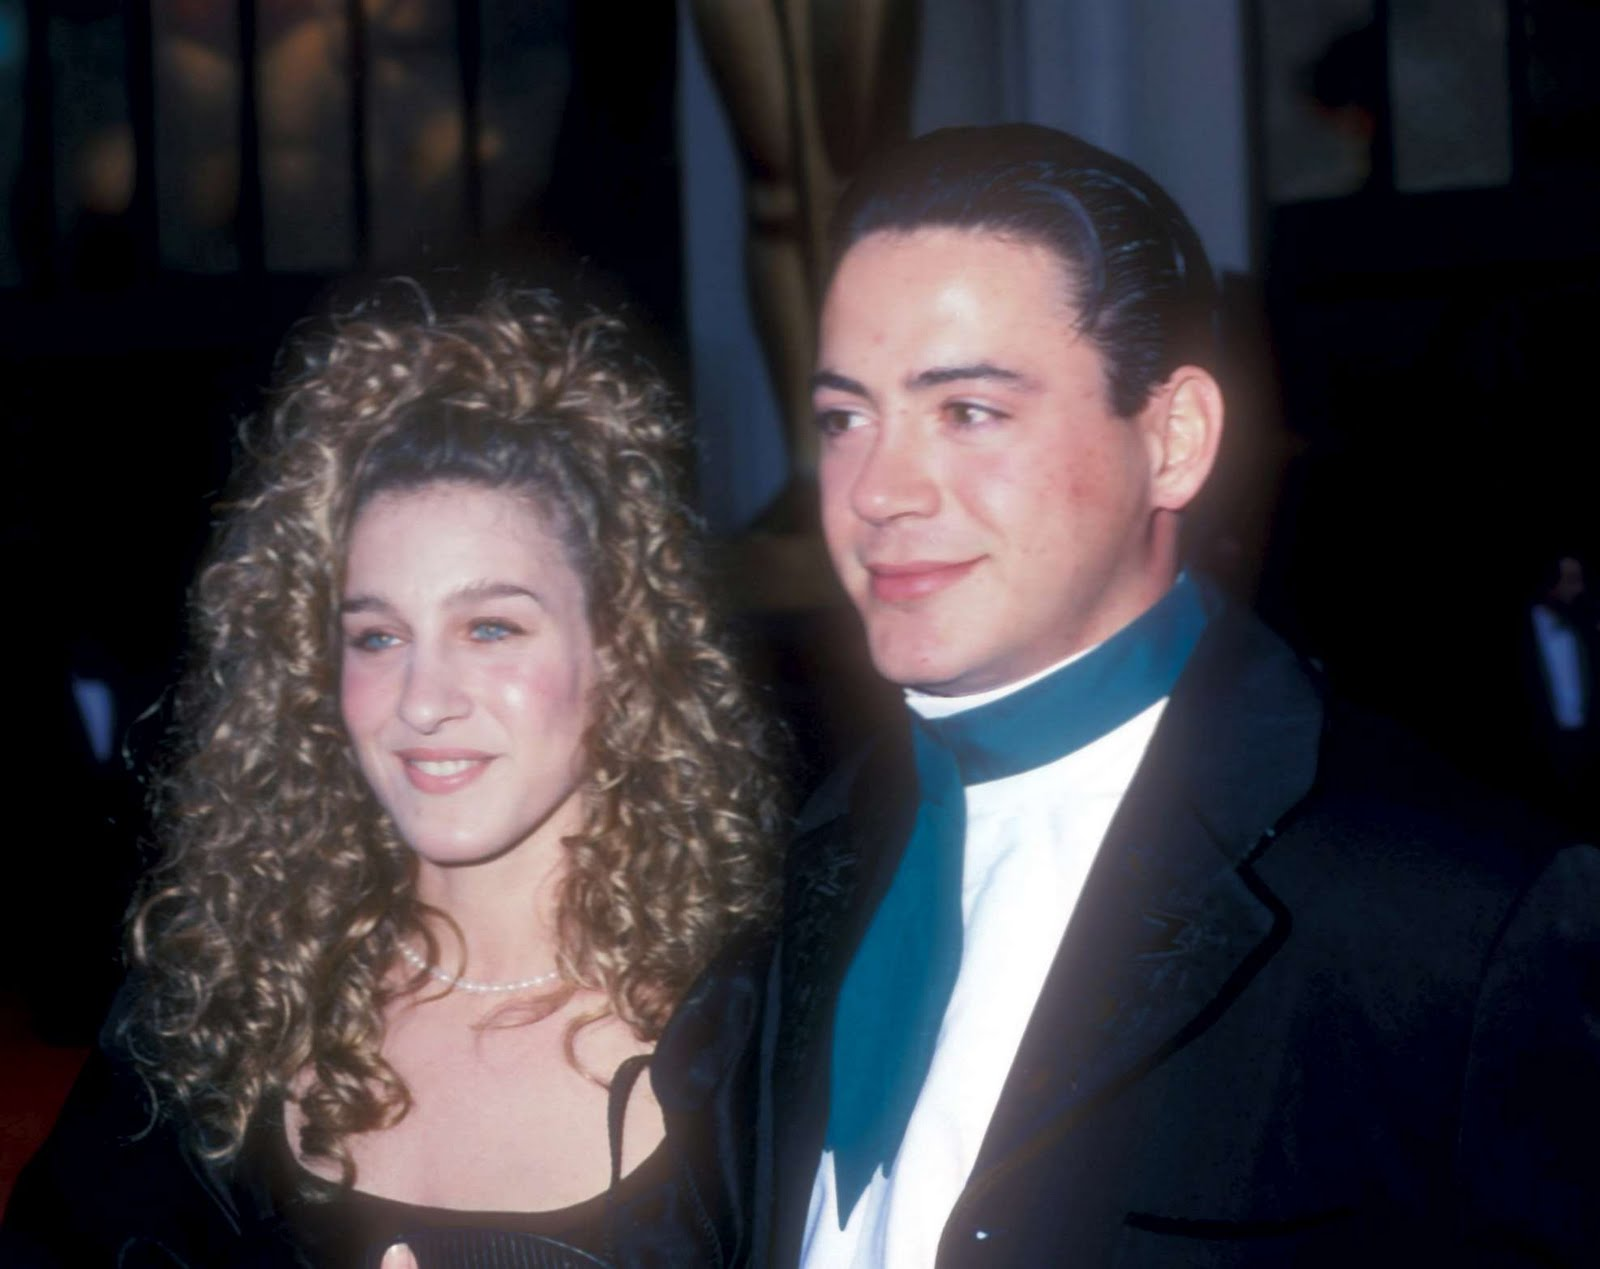 http://4.bp.blogspot.com/-locAUniIug4/TWWHXVunpzI/AAAAAAAADIY/ldxv7795neI/s1600/61st-Annual-Academy-Awards-29th-March-1989-robert-downey-jr-14101340-1974-15661989.jpg